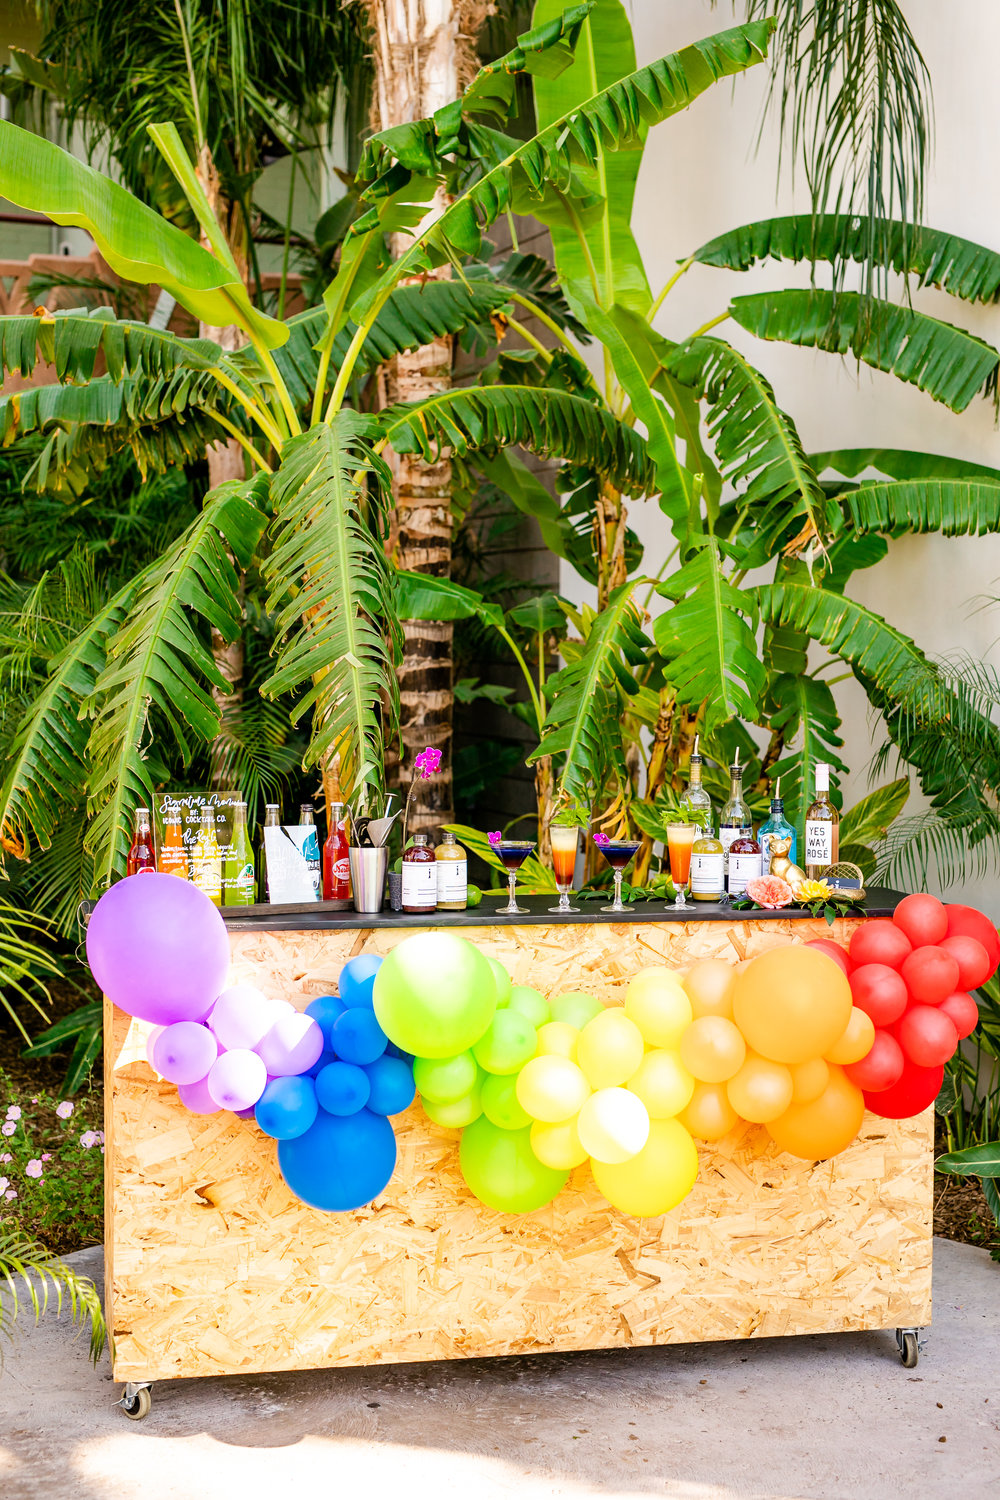 The Most Colorful 30th Birthday Bash Ever featured on Inspired by This- Konsider It Done- AZ Arizona Wedding & Event Planner, Designer, Coordinator Planning in Scottsdale, Phoenix, Paradise Valley, Tempe, Gilbert, Mesa, Chandler, Tucson, Sedona